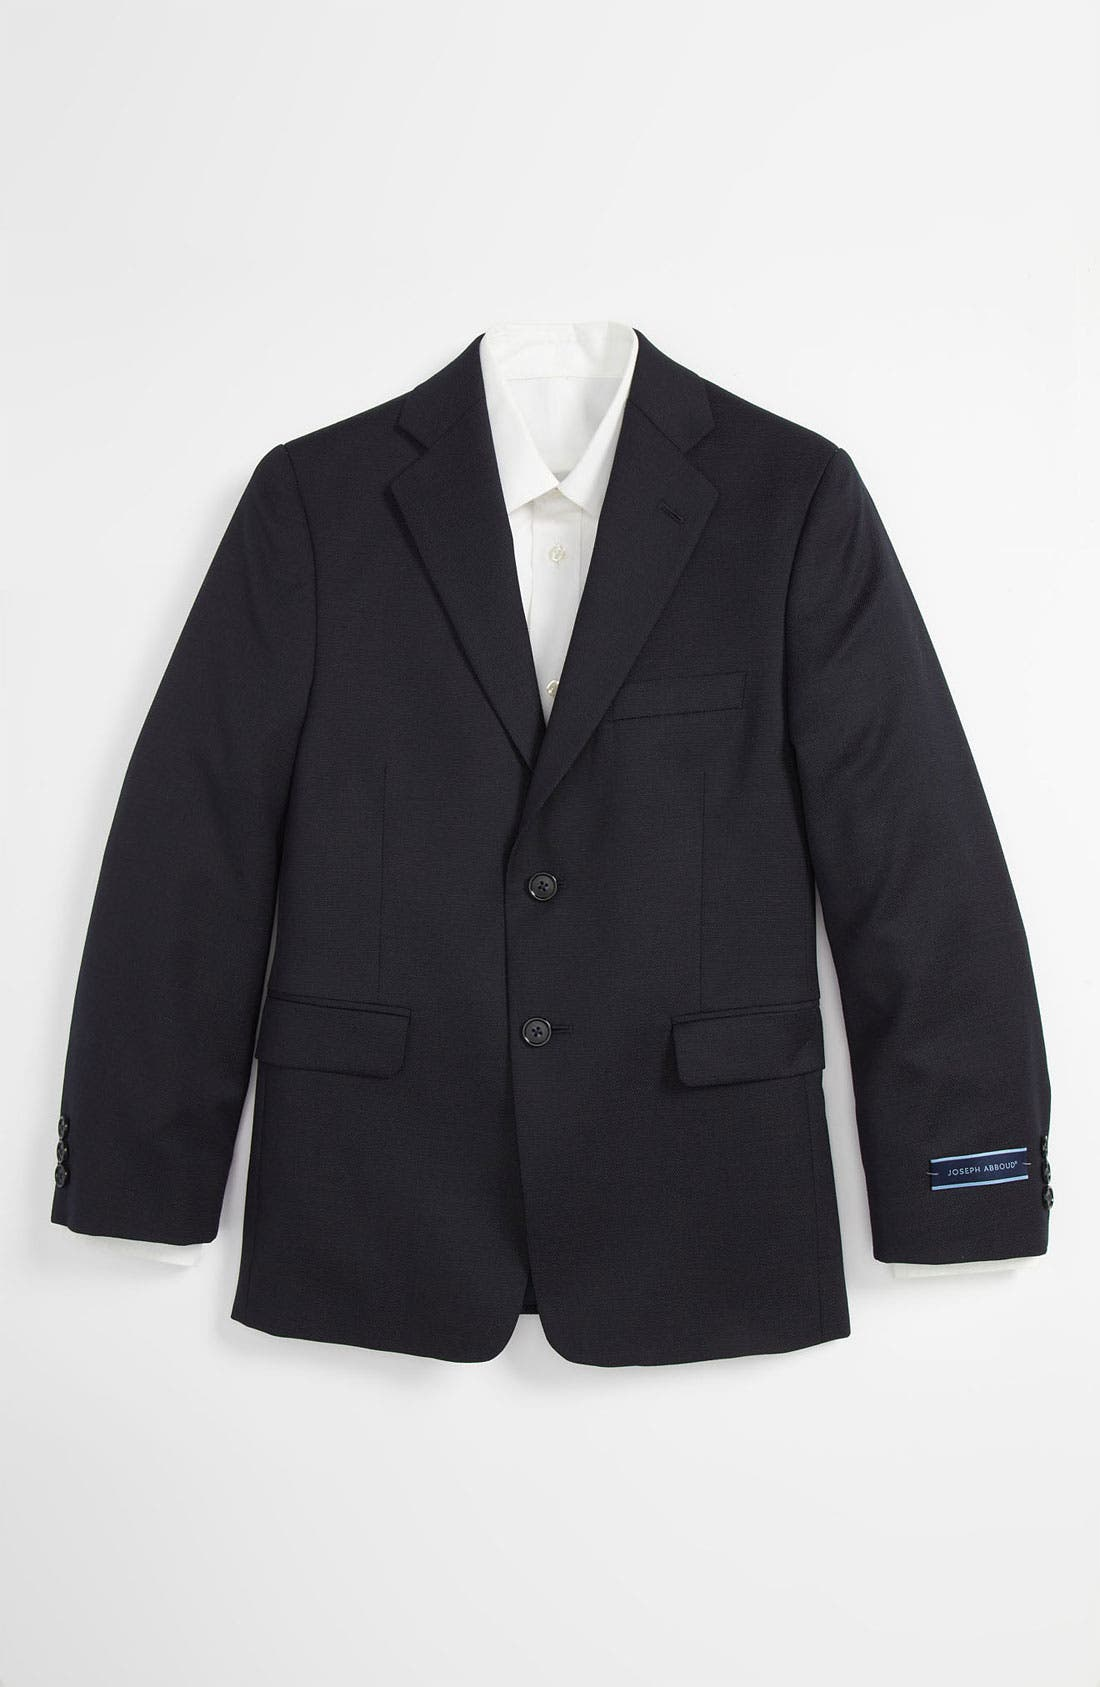 Main Image - Joseph Abboud Suit Blazer (Big Boys)